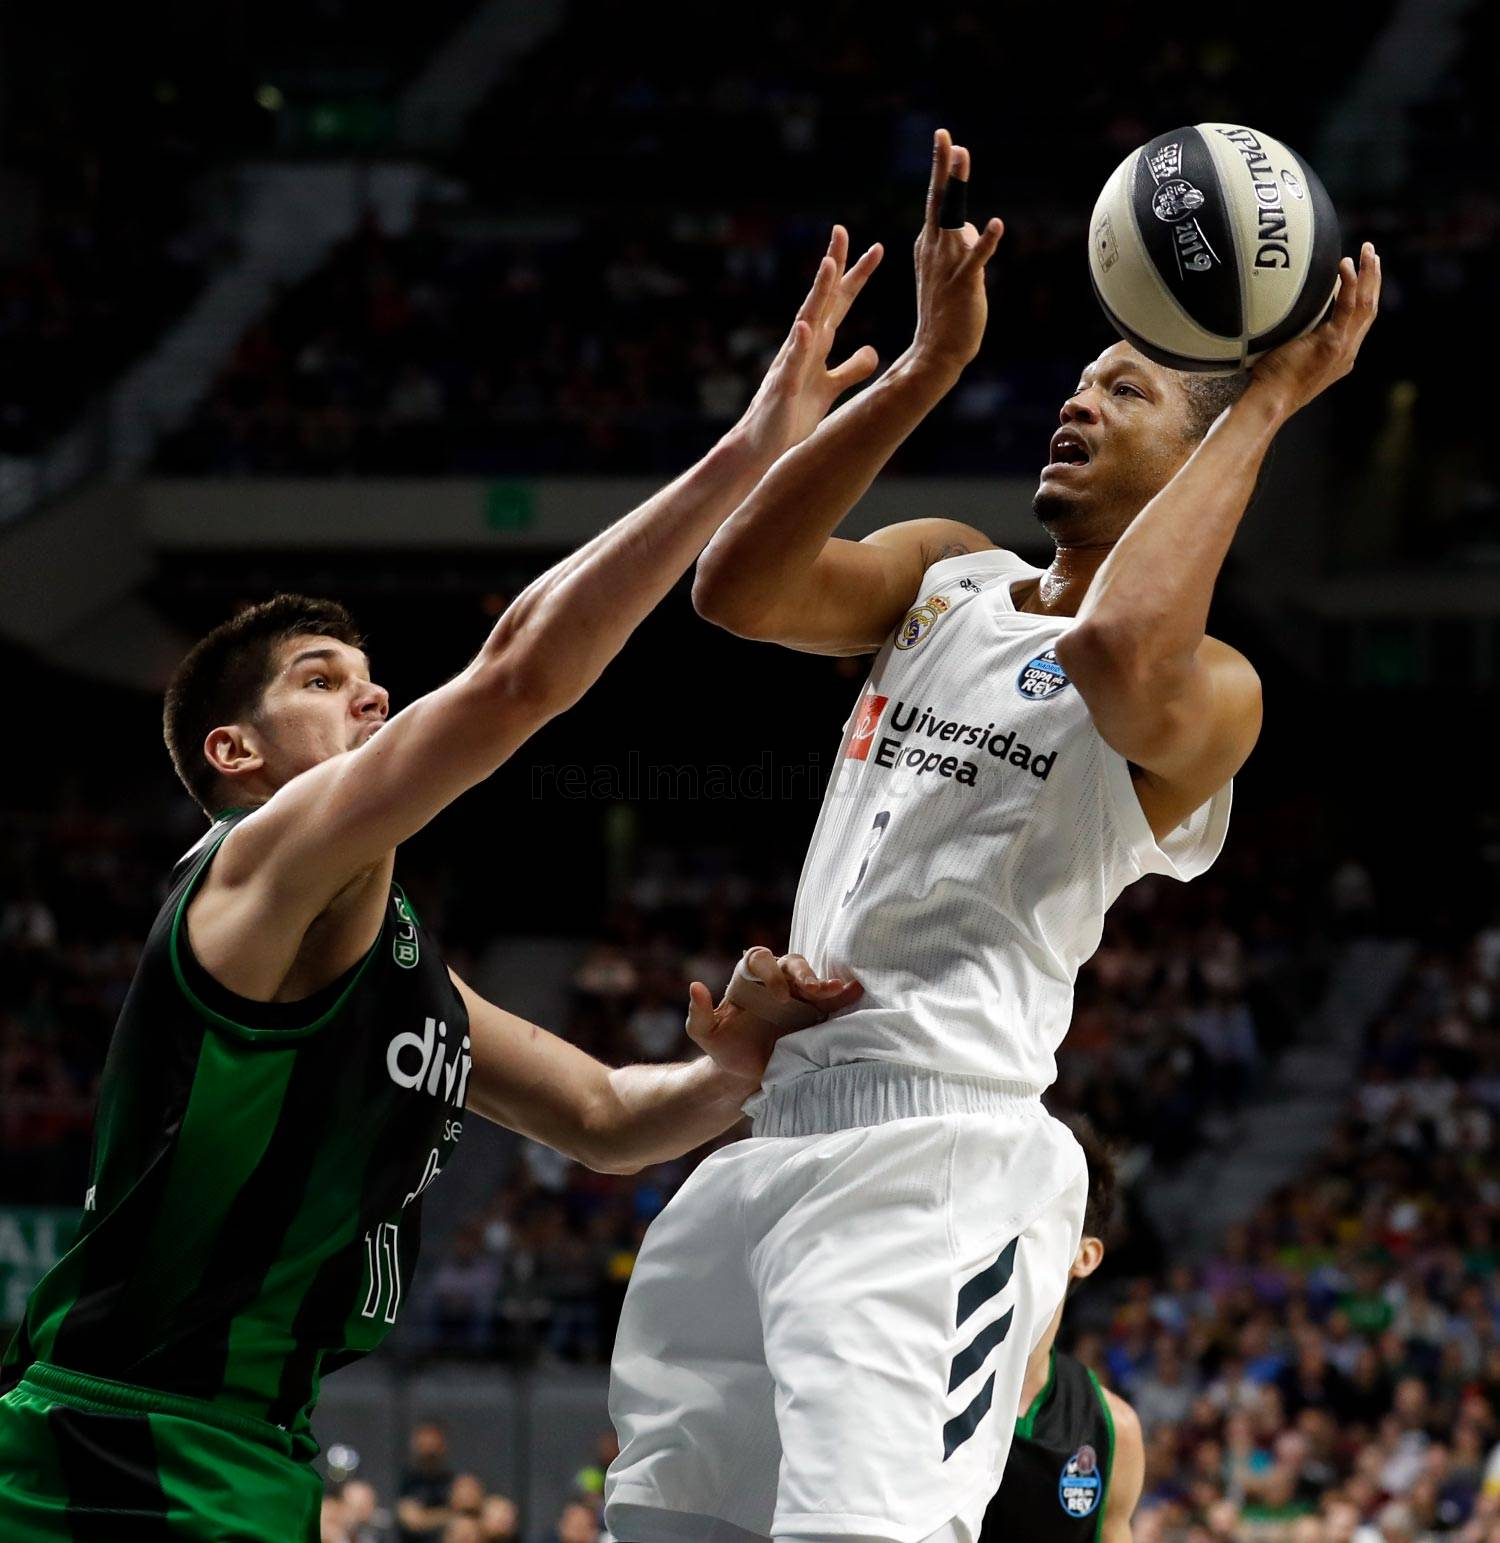 Real Madrid - Real Madrid - Divina Seguros Joventut - 16-02-2019